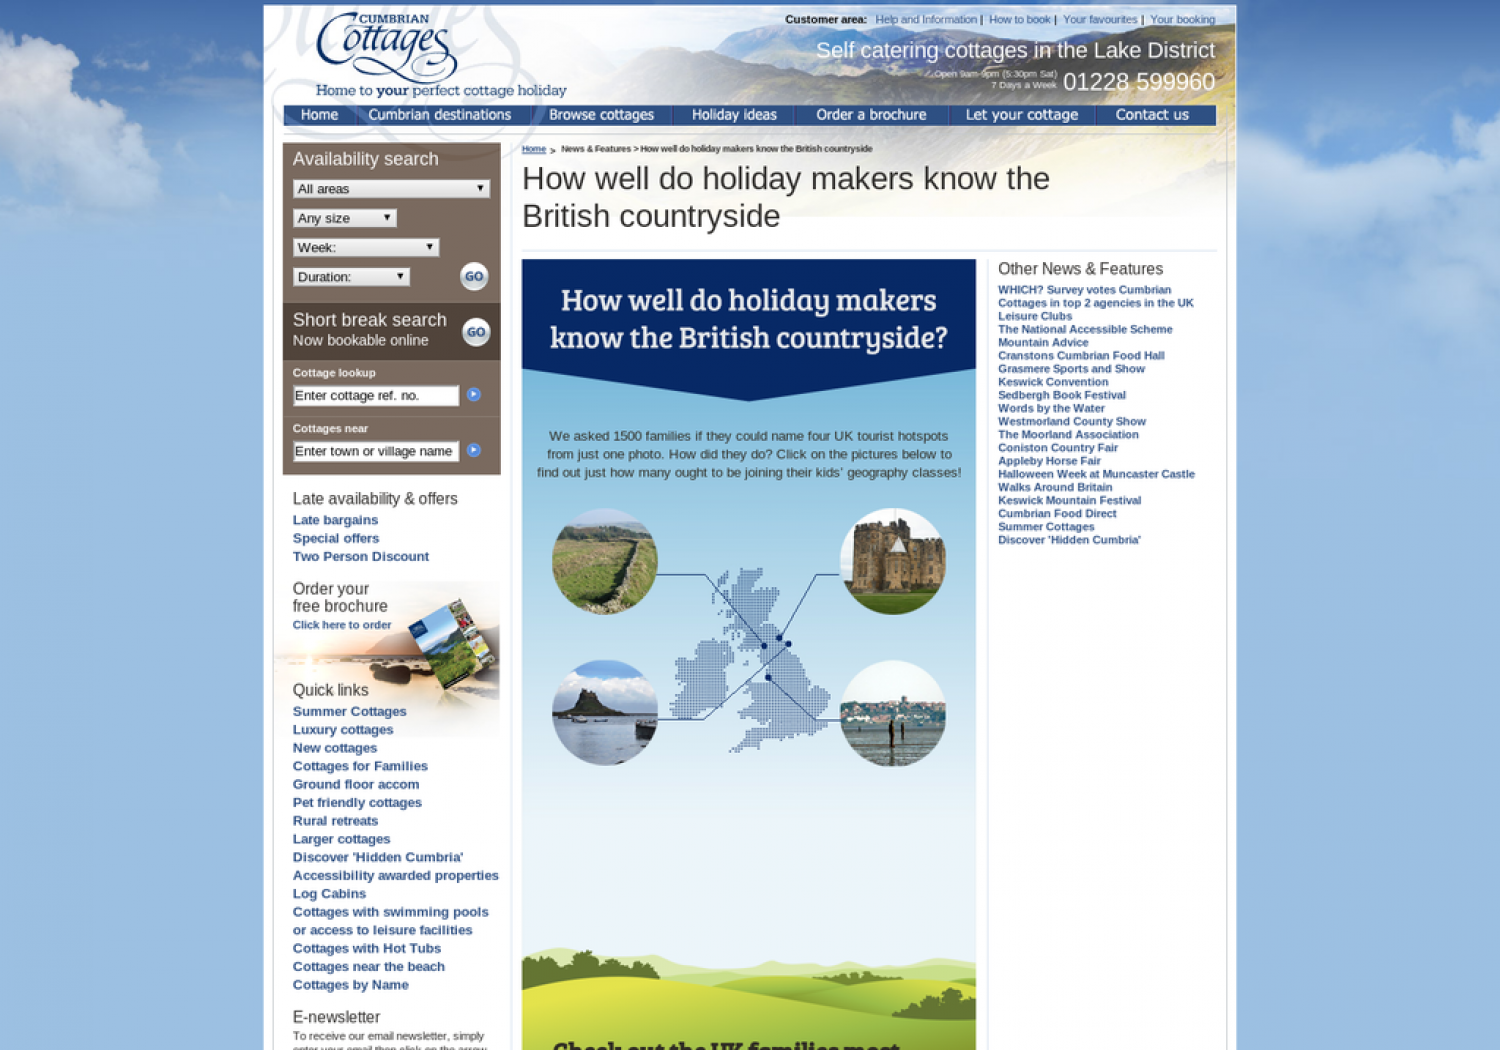 How well do holiday makers know the British countryside Infographic